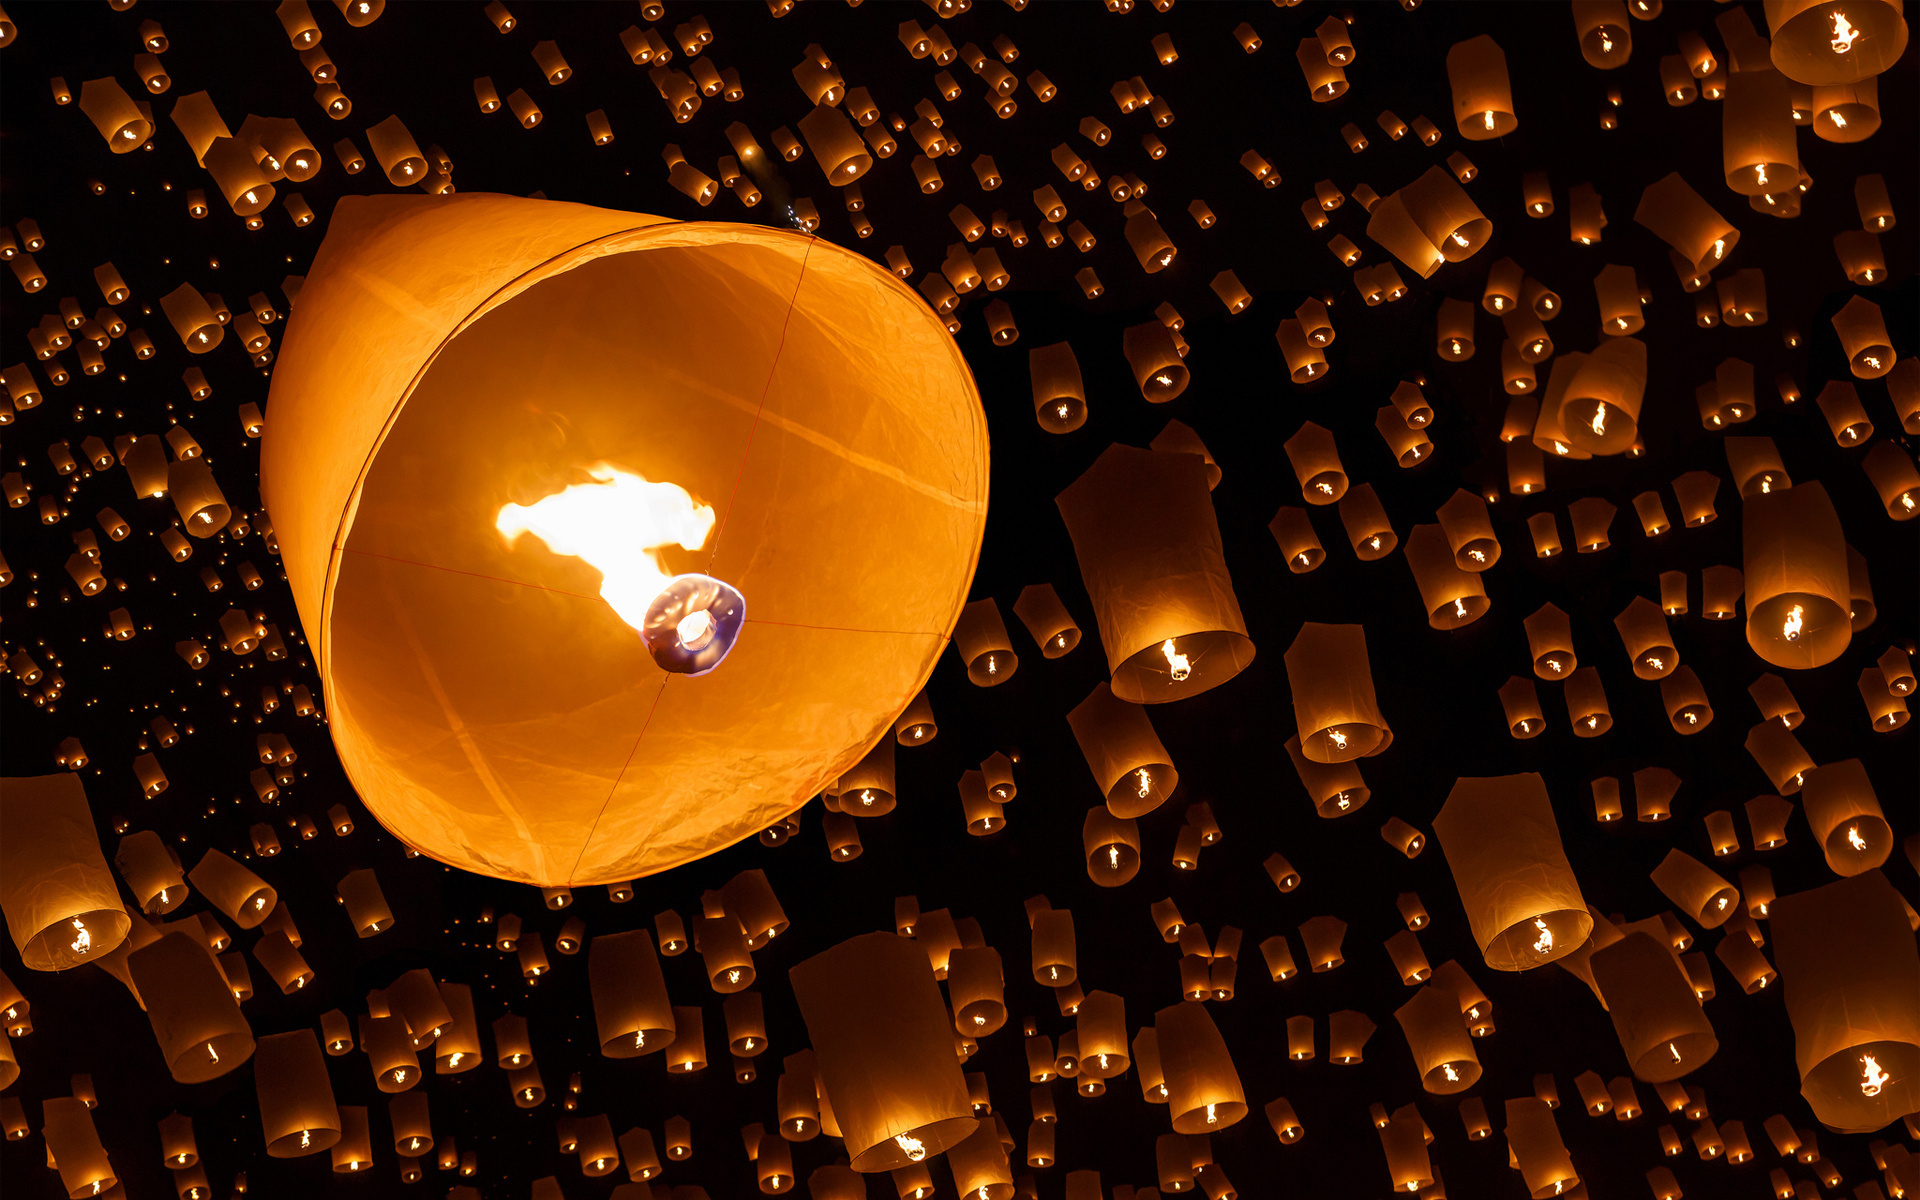 Sky Lanterns Wallpaper Iphone Candles Hd Wallpapers Candle Backgrounds And Images All